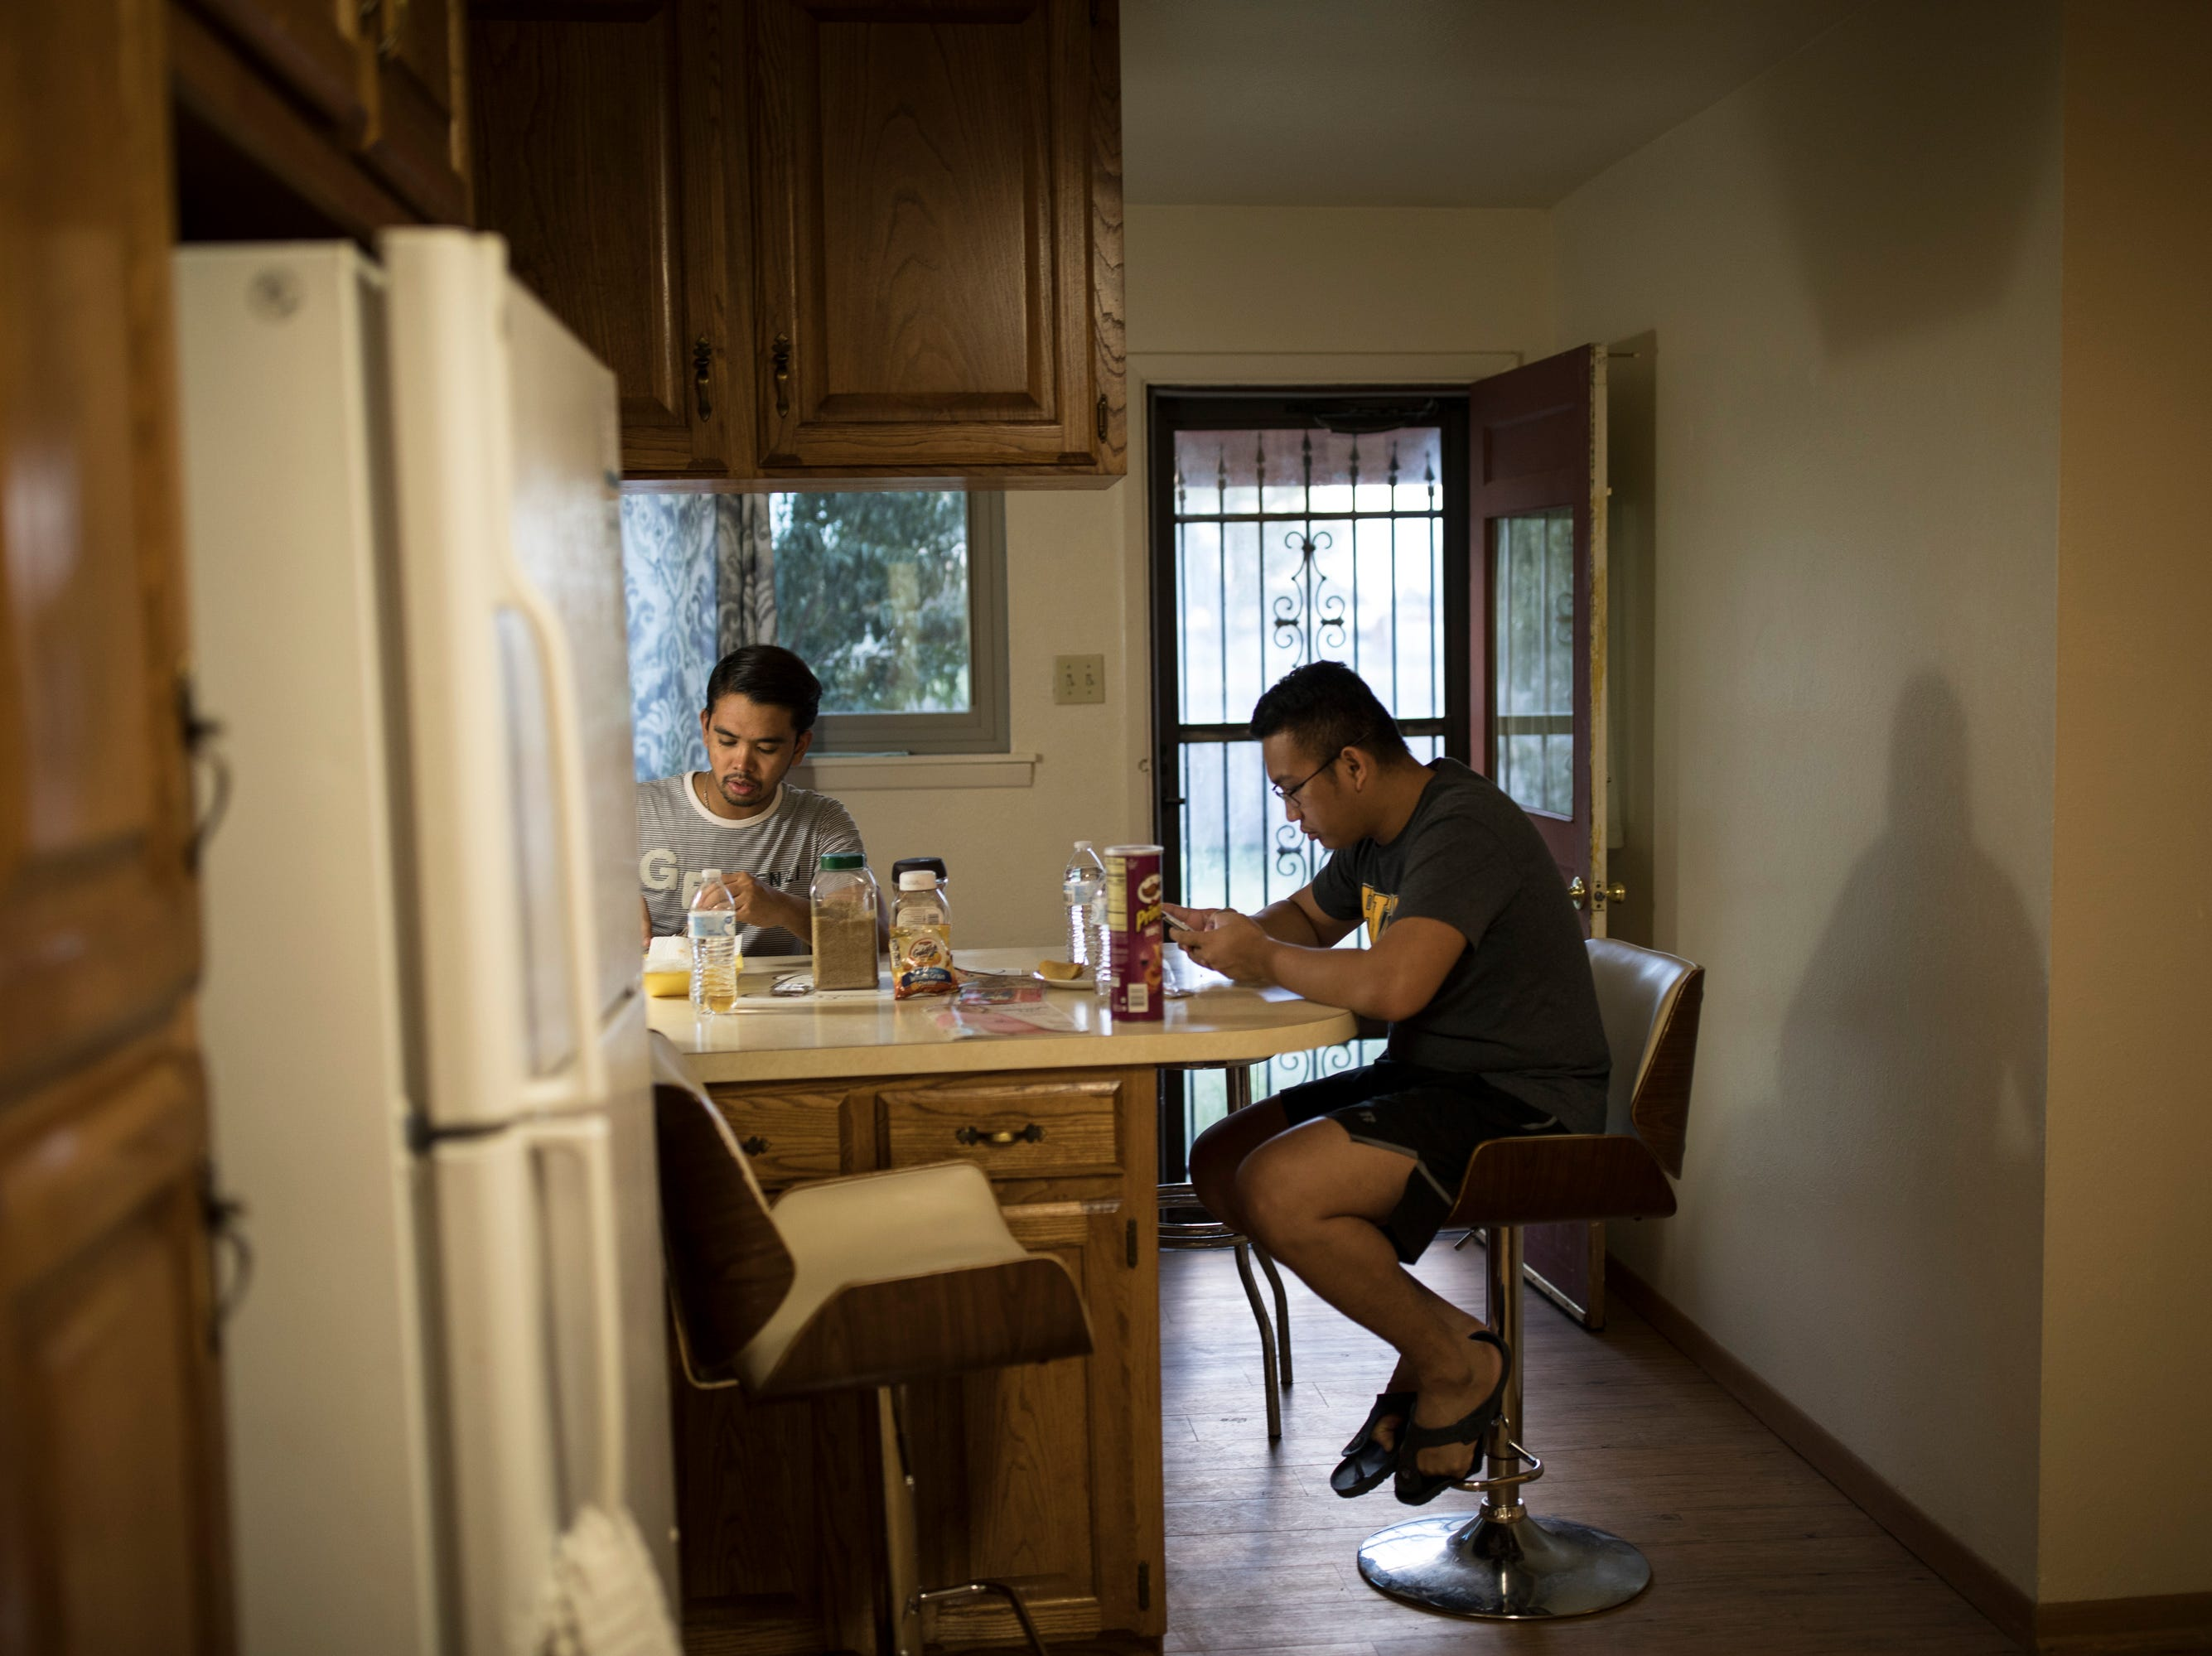 Ronell Mangilit, left, and Kim Alrod Araza hang out in the kitchen of the home they share with two other teachers in Hobbs, NM. Strapped with payments towards their debt to recruiters, many of the teachers still feel the risk is worth their while. Starting teacher salaries in New Mexico are amongst the lowest in the nation at $36,180 whereas the teachers are accustomed to $400-$800 per month in their home country.